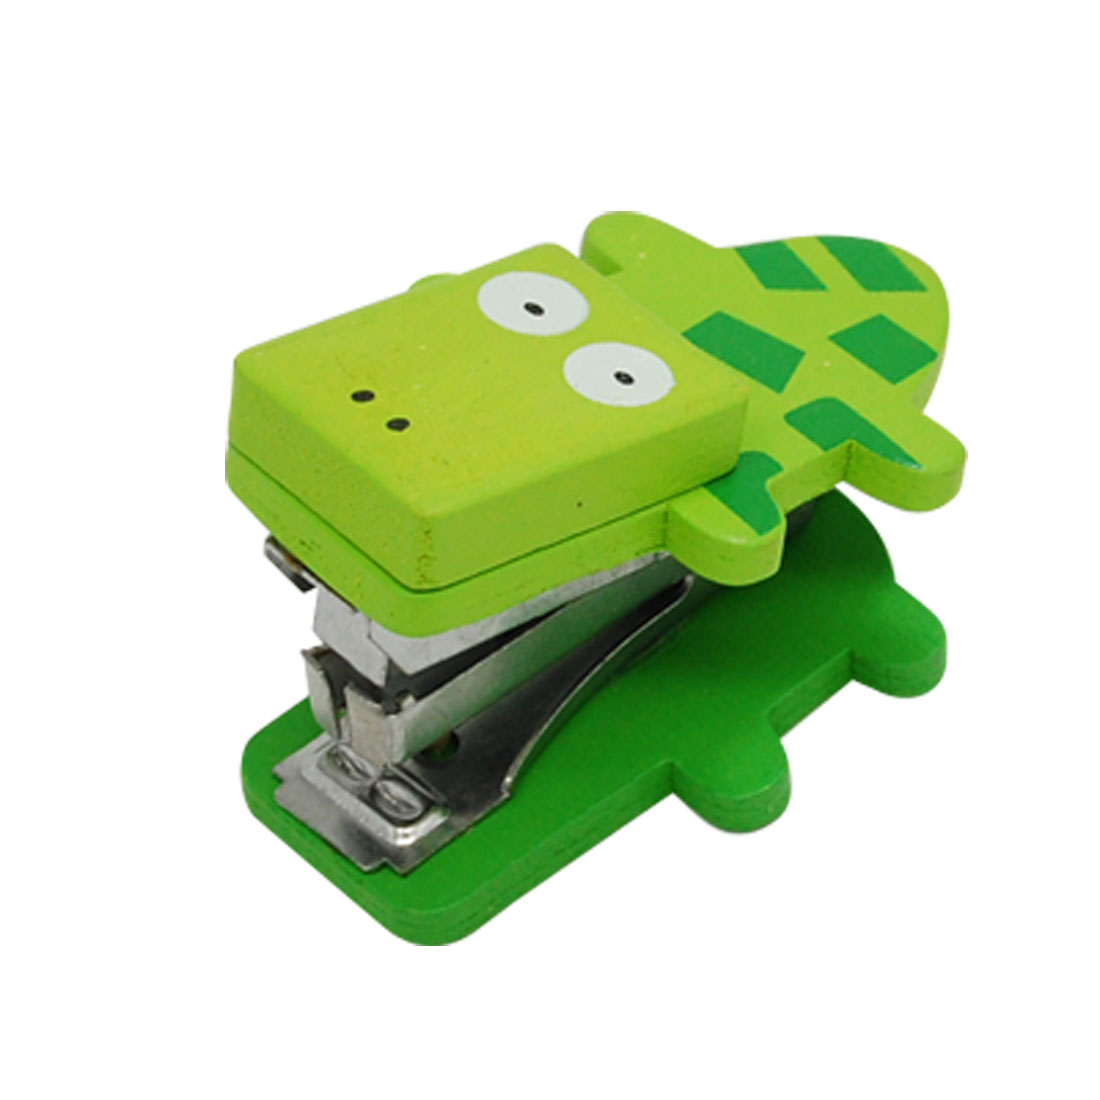 Green Crocodile Design Mini Portable Wooden Desk Stapler